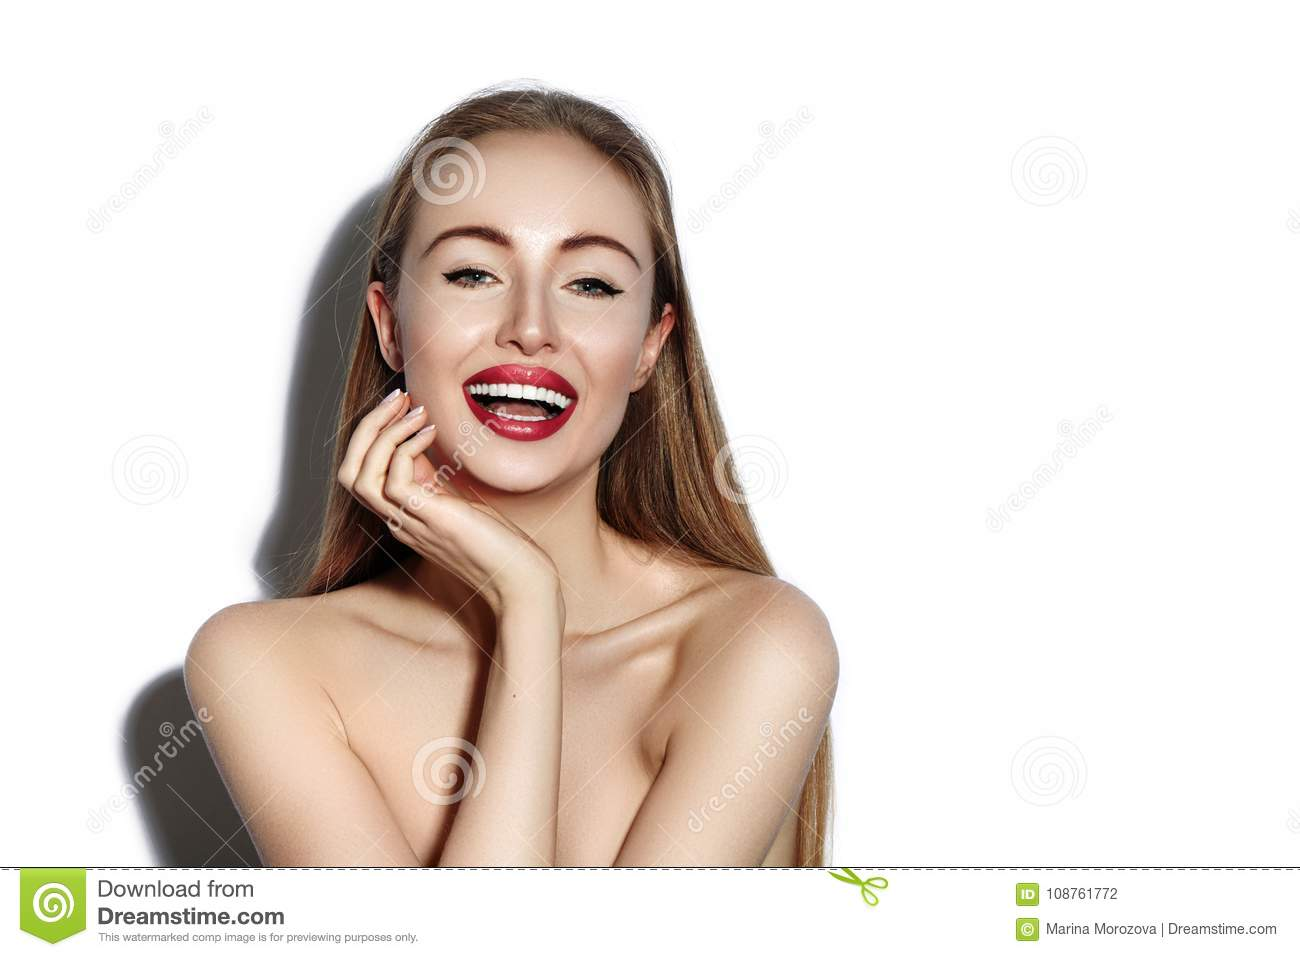 smiling woman with Glamour Red Lips, bright Makeup, clean Skin. Smile with White Teeth. Happy Fashion Girl